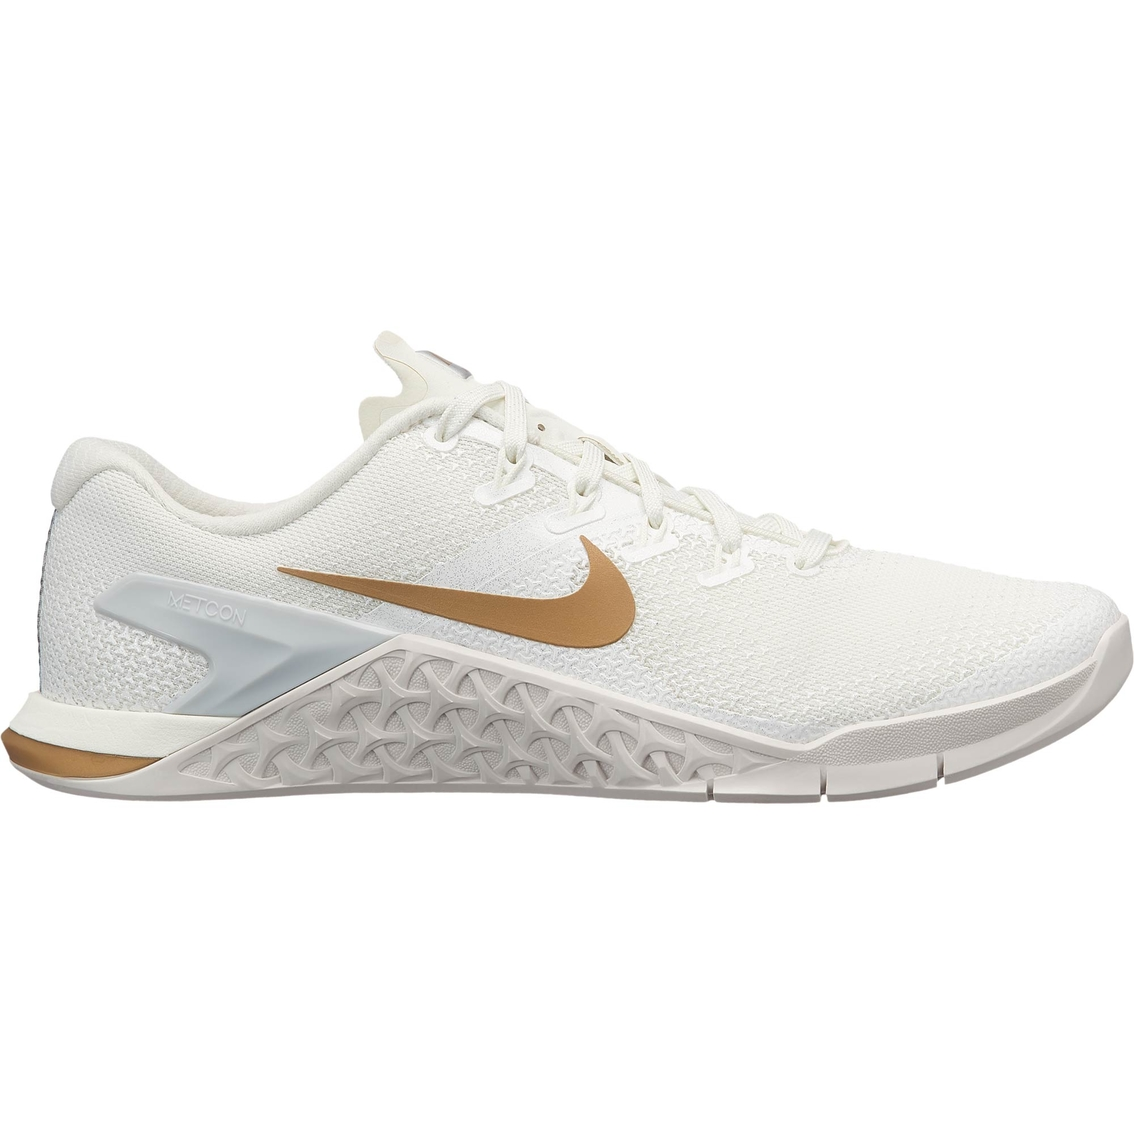 new style 46dc0 5ff53 Nike Metcon 4 Champagne Women s Training Shoes